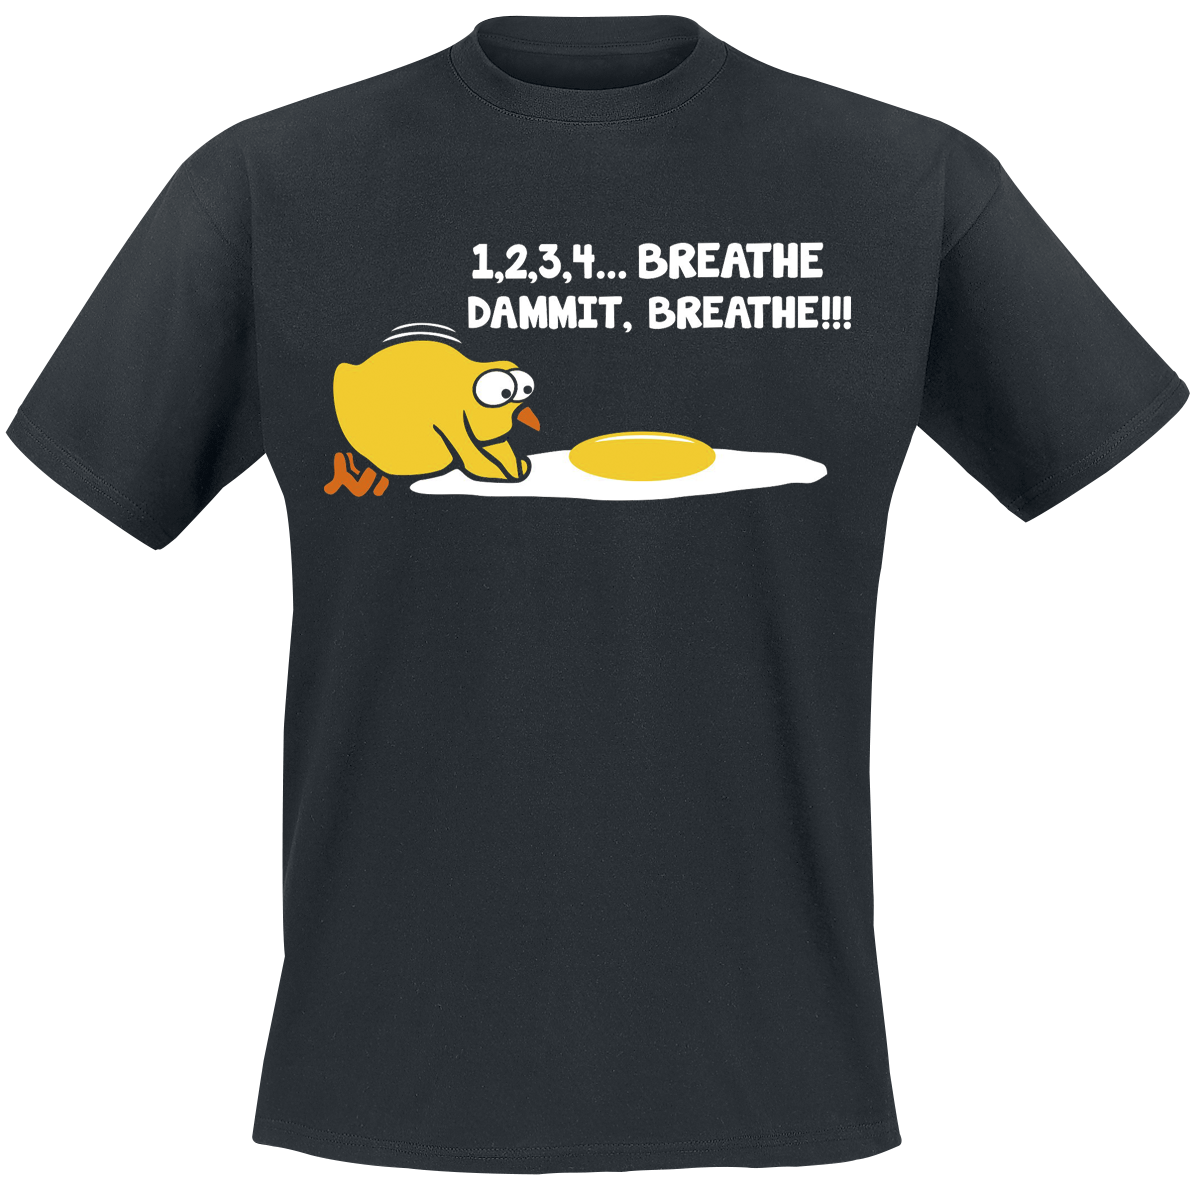 1,2,3,4... Breathe, Dammit, Breathe!!! - - T-Shirt - black